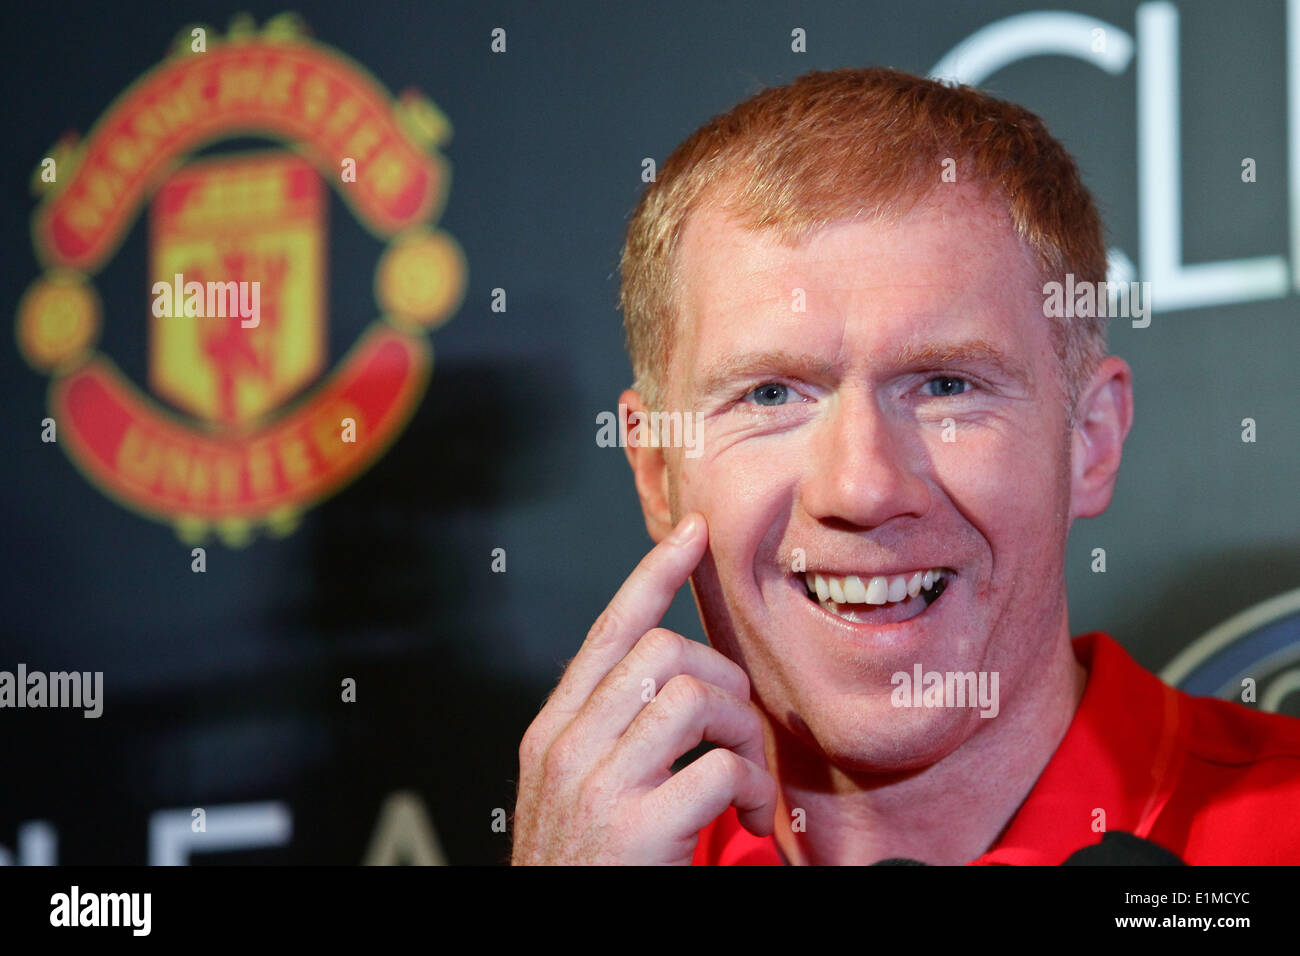 Manila, Philippines. 6th June, 2014. Makati, Philippines - Former Manchester United player Paul Scholes smiles during a press conference in Makati on June 6, 2014. Together with Andy Cole, they will play an exhibition game against local amatuer and professional football players. Credit:  Mark Cristino/NurPhoto/ZUMAPRESS.com/Alamy Live News - Stock Image